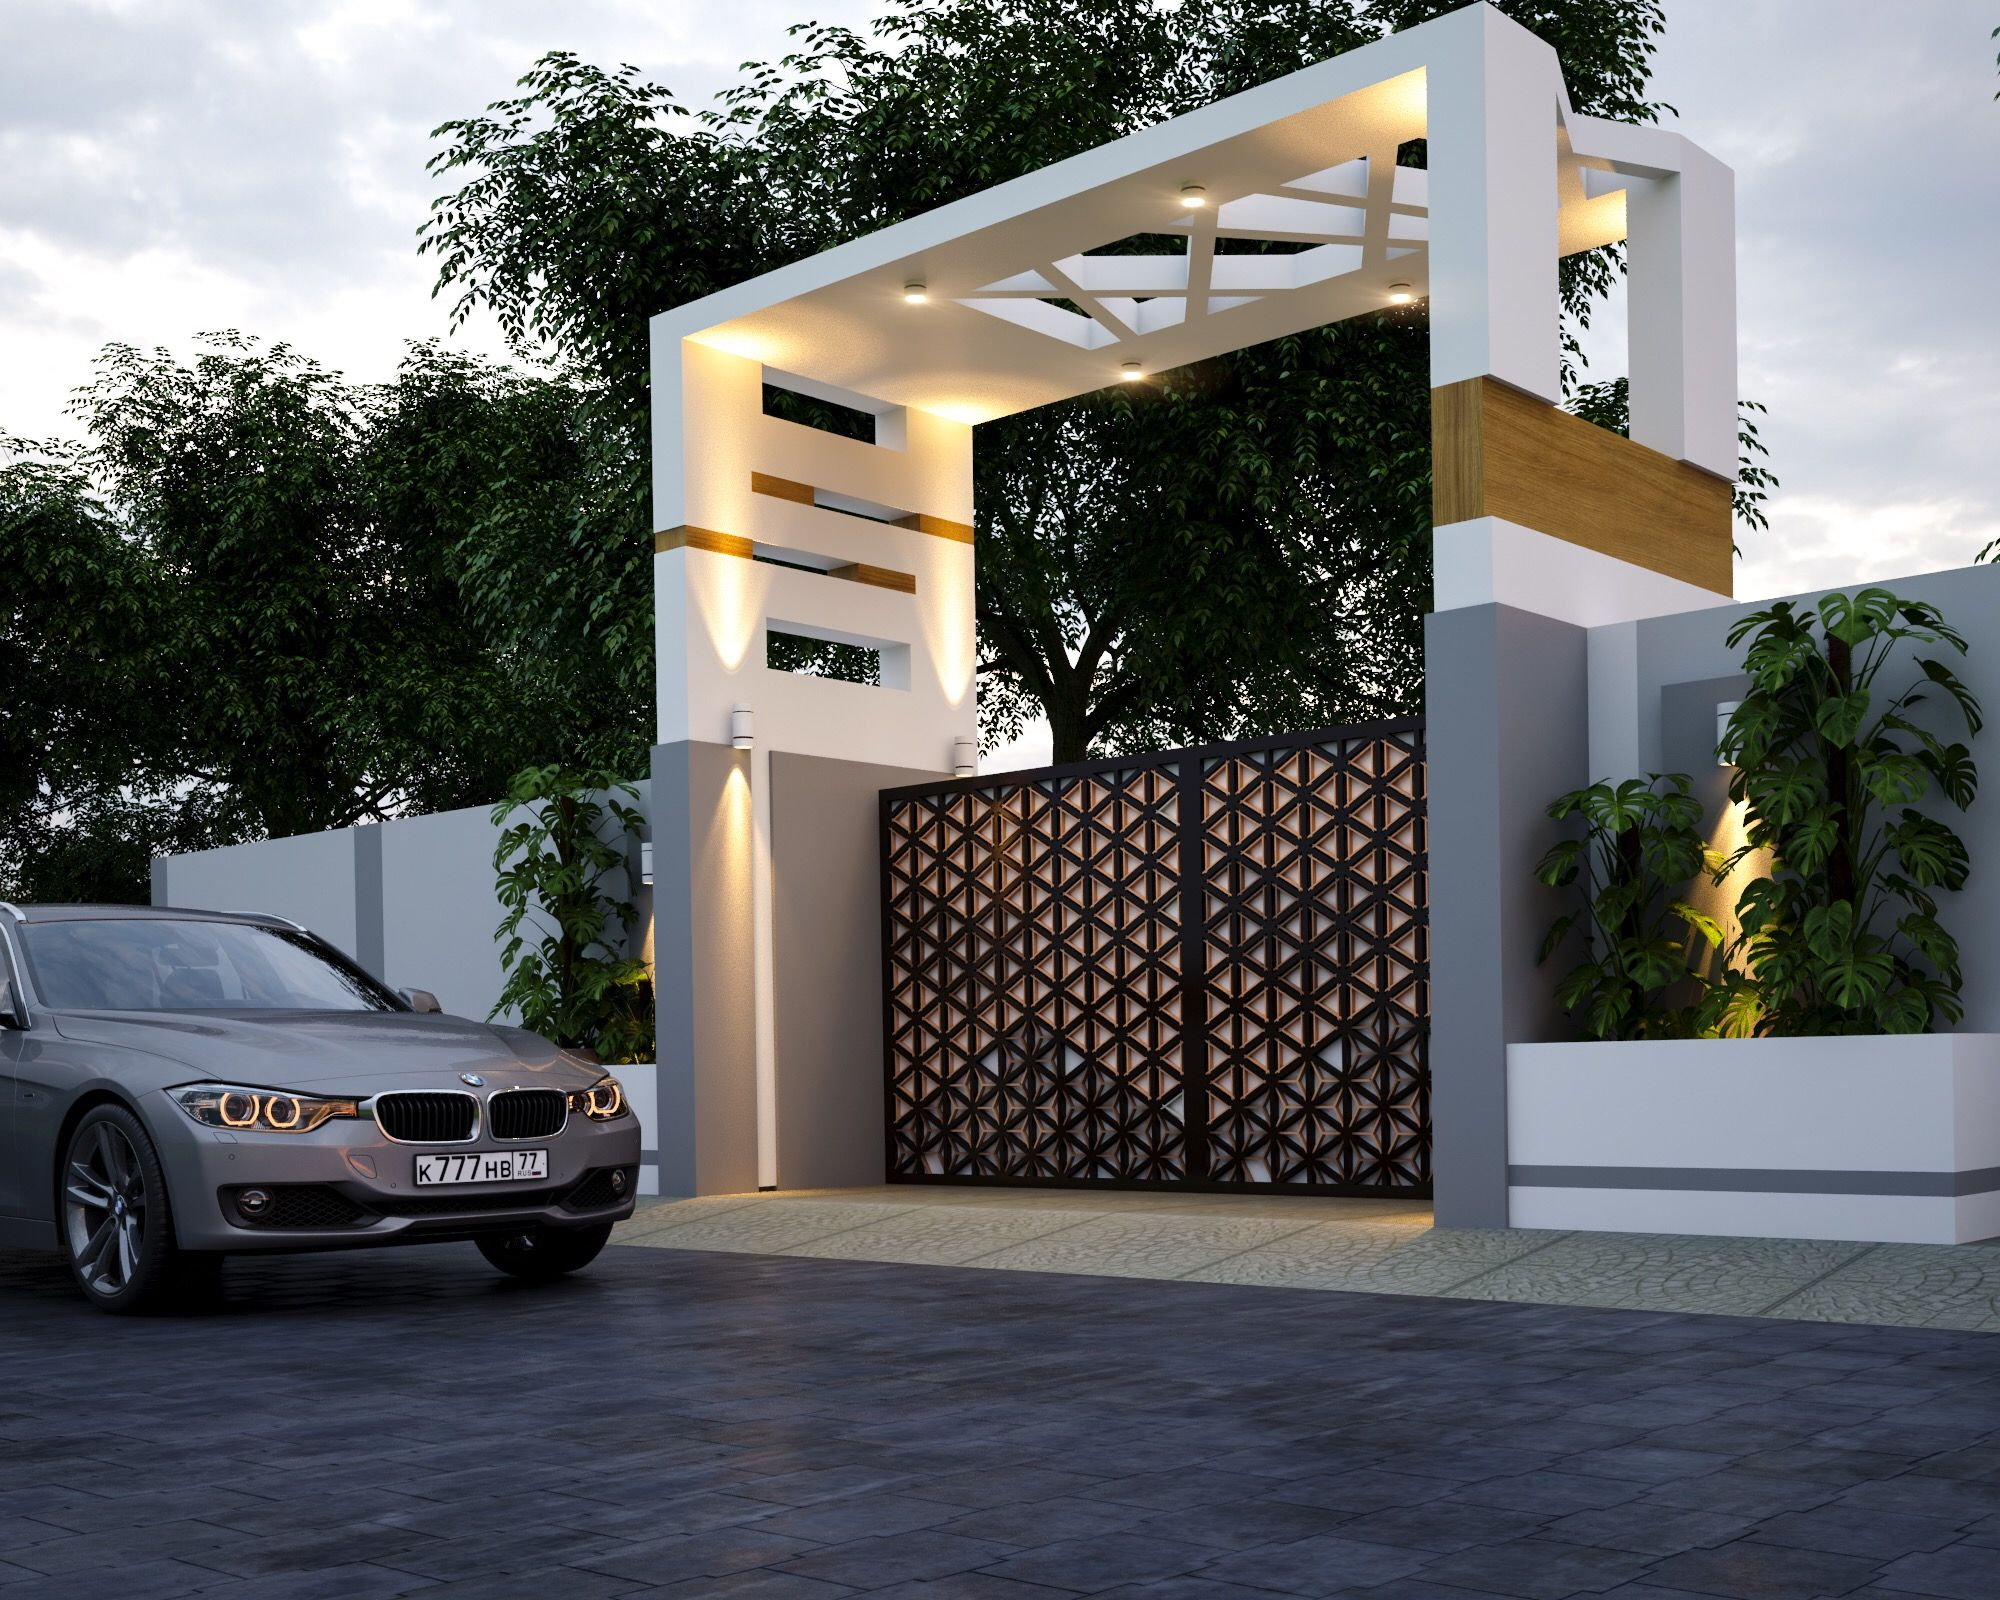 f05db183e8696ce211b019e028f7fcfb - 34+ Residential Modern Gate Design For Small House Pictures